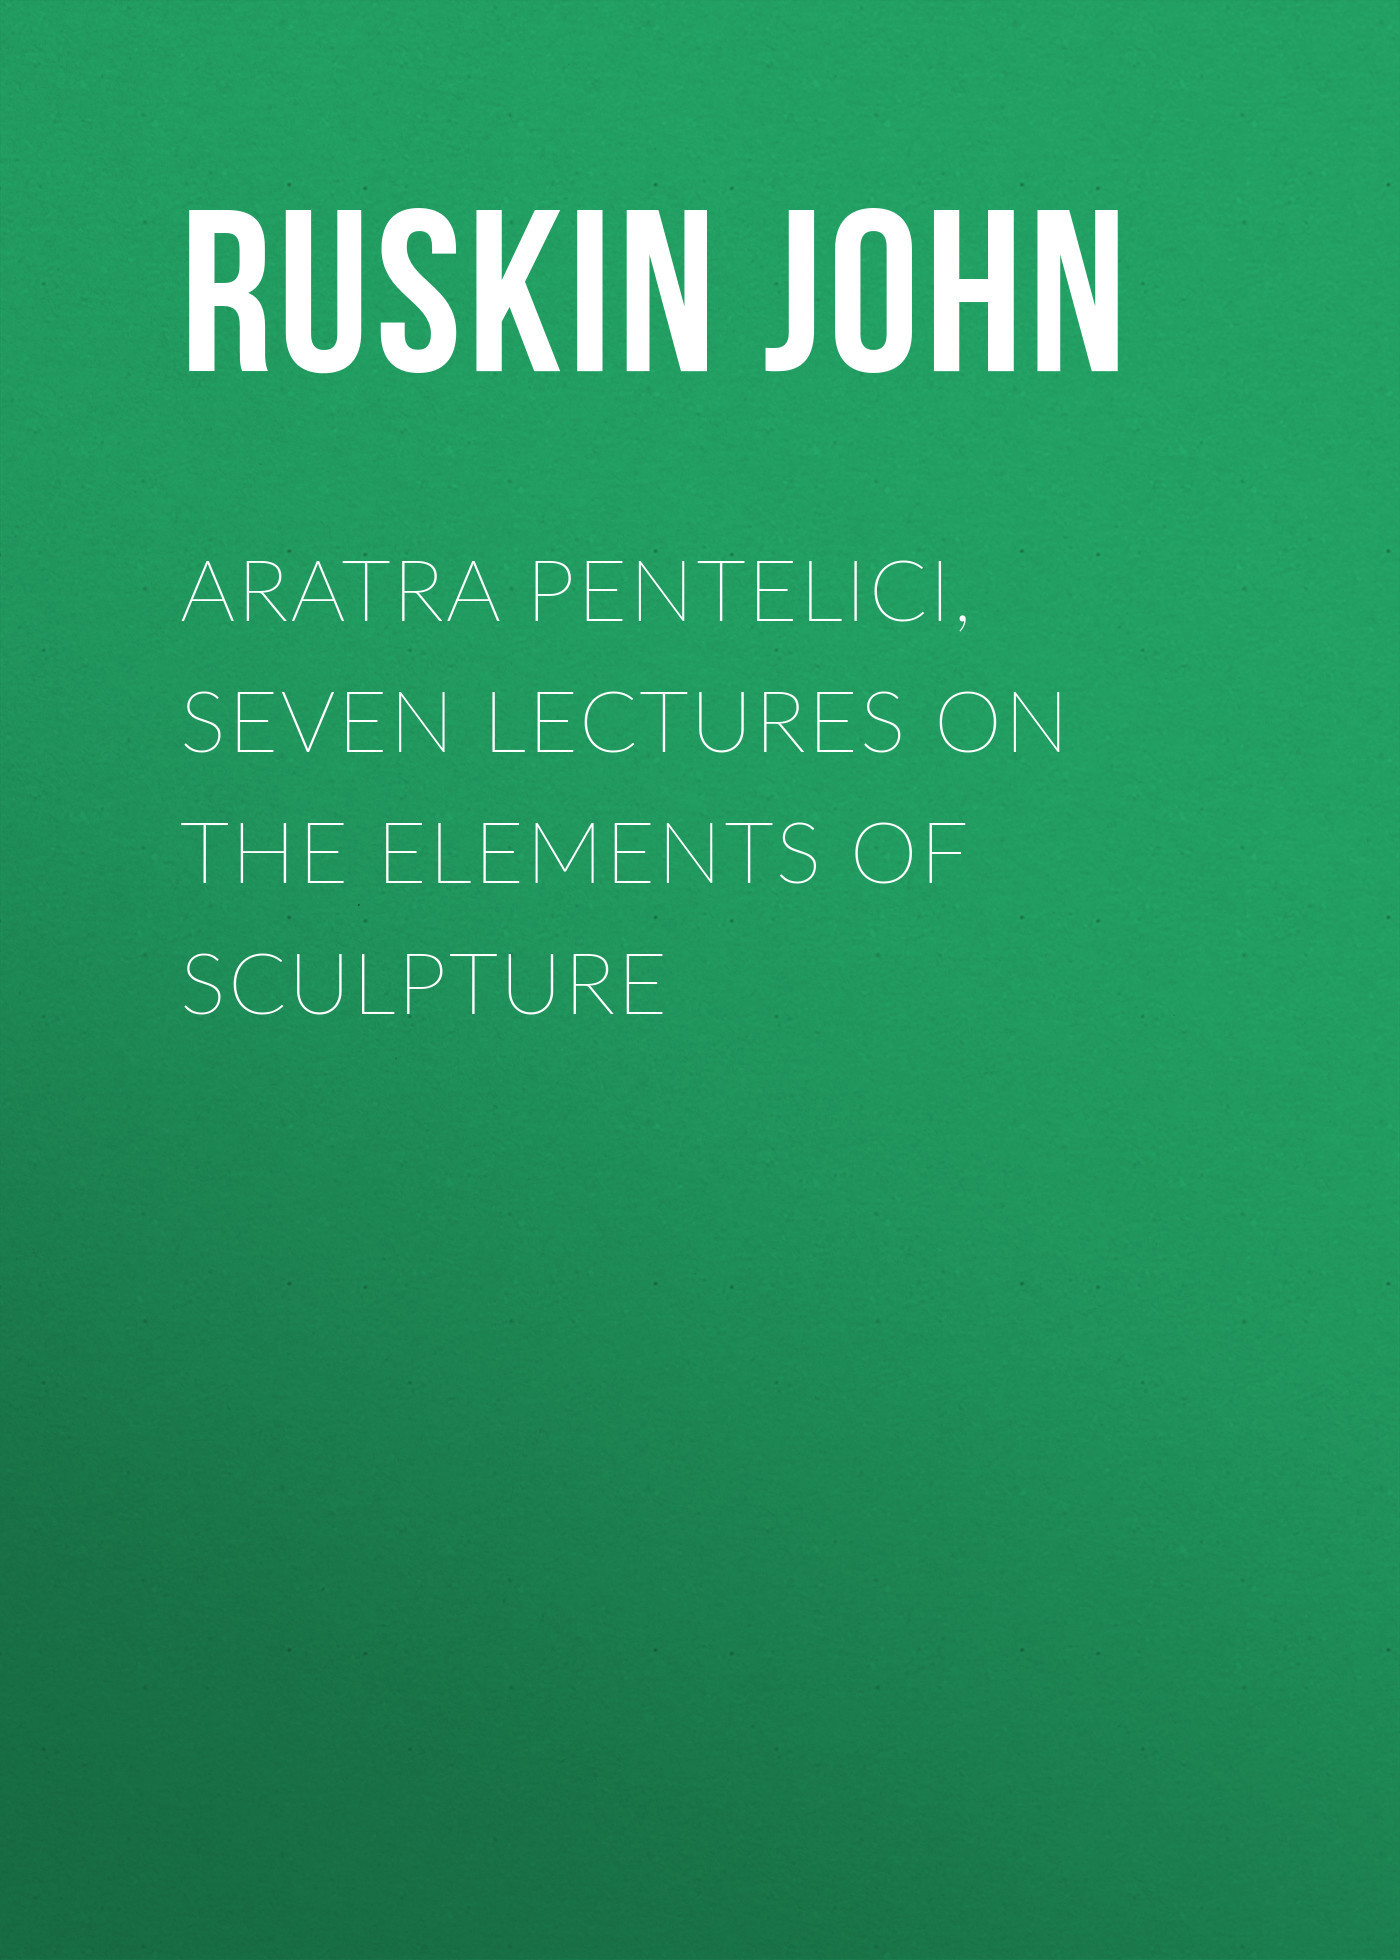 Aratra Pentelici, Seven Lectures on the Elements of Sculpture